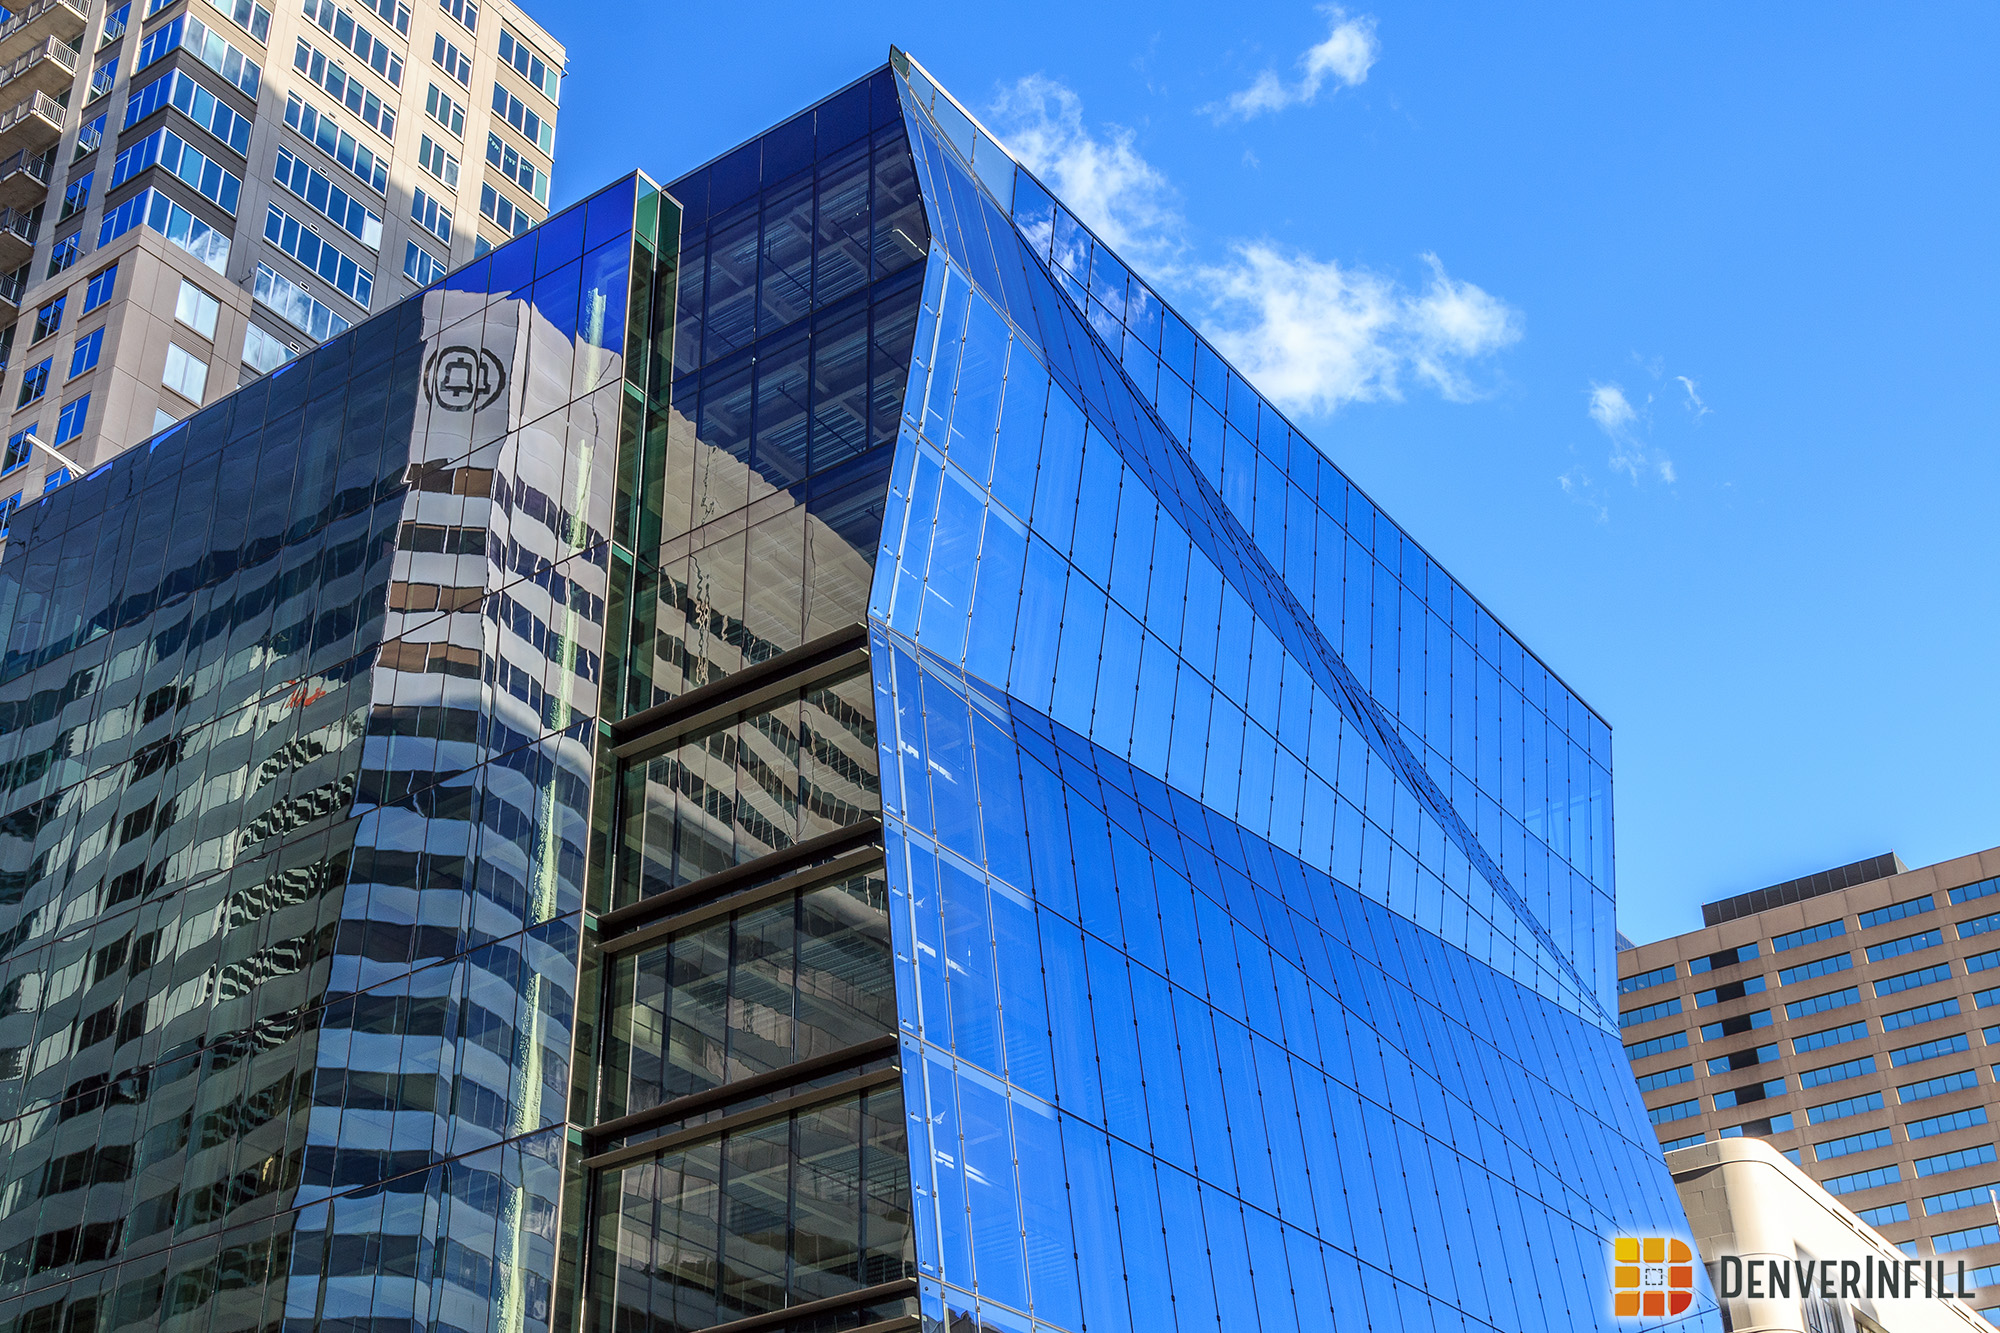 Prism Glass Curtain Wall